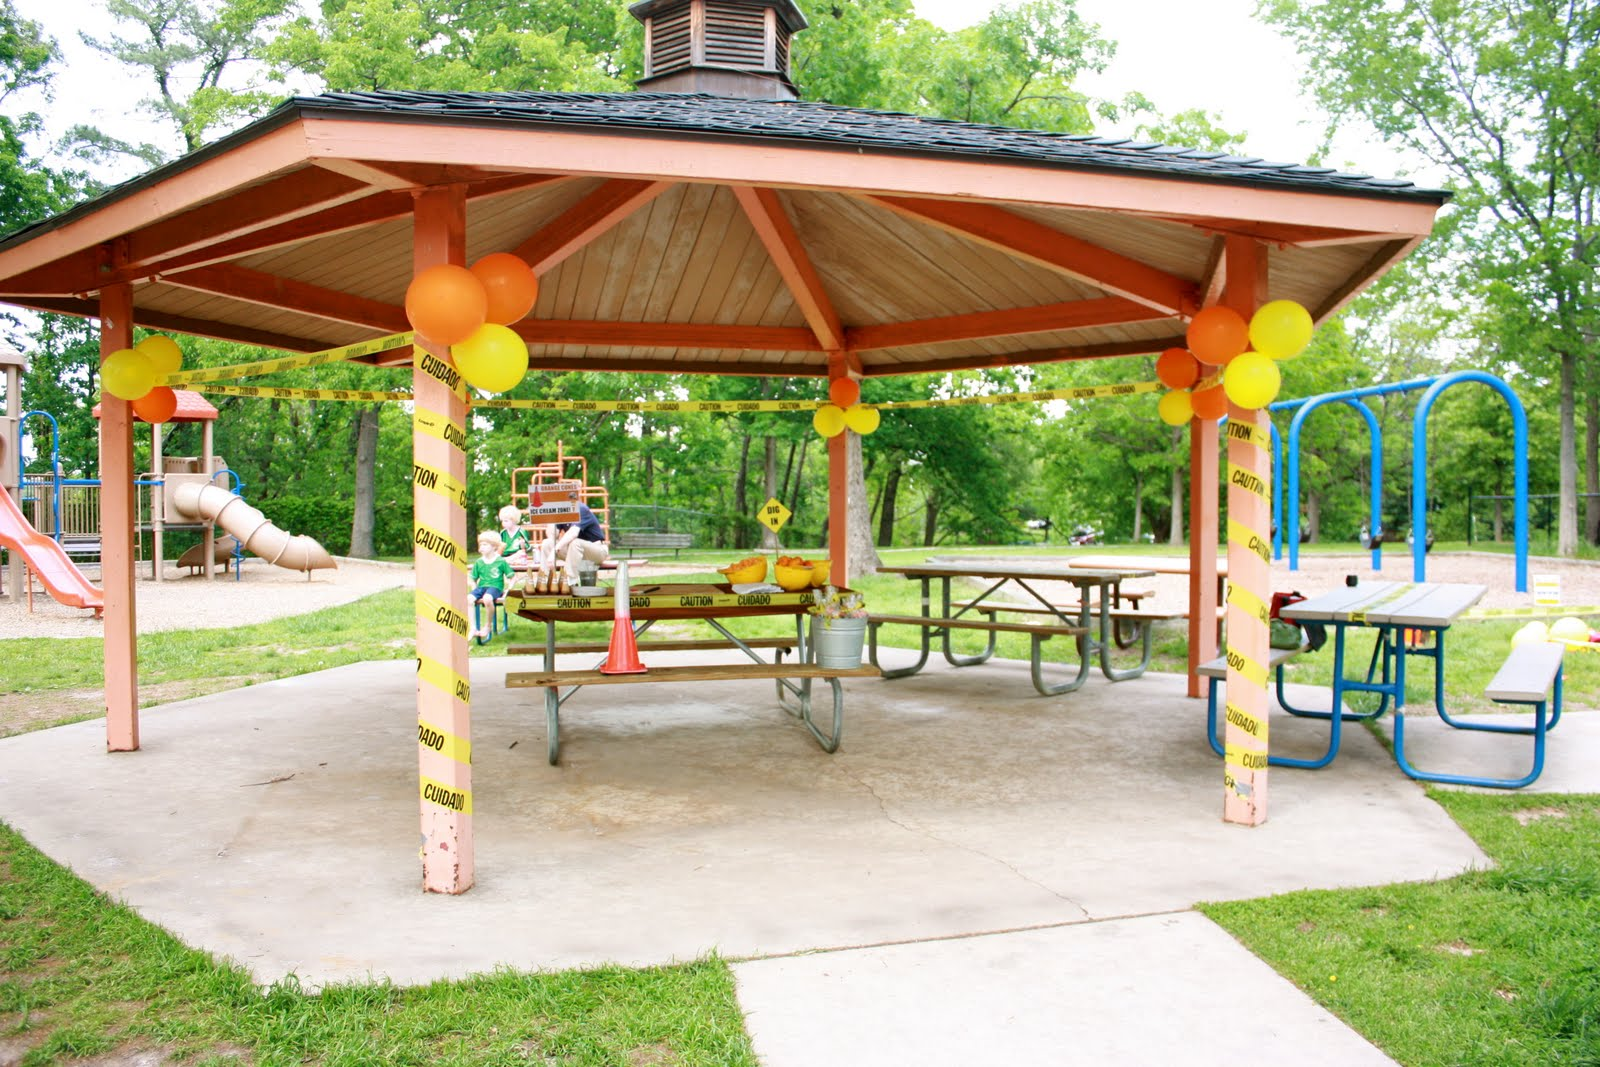 Fairlington Park Is The Perfect Shade Tables And Barbecues Playgrounds Swings For Babies To School Aged Kids A Huge Sandbox Tons Of Play Toys